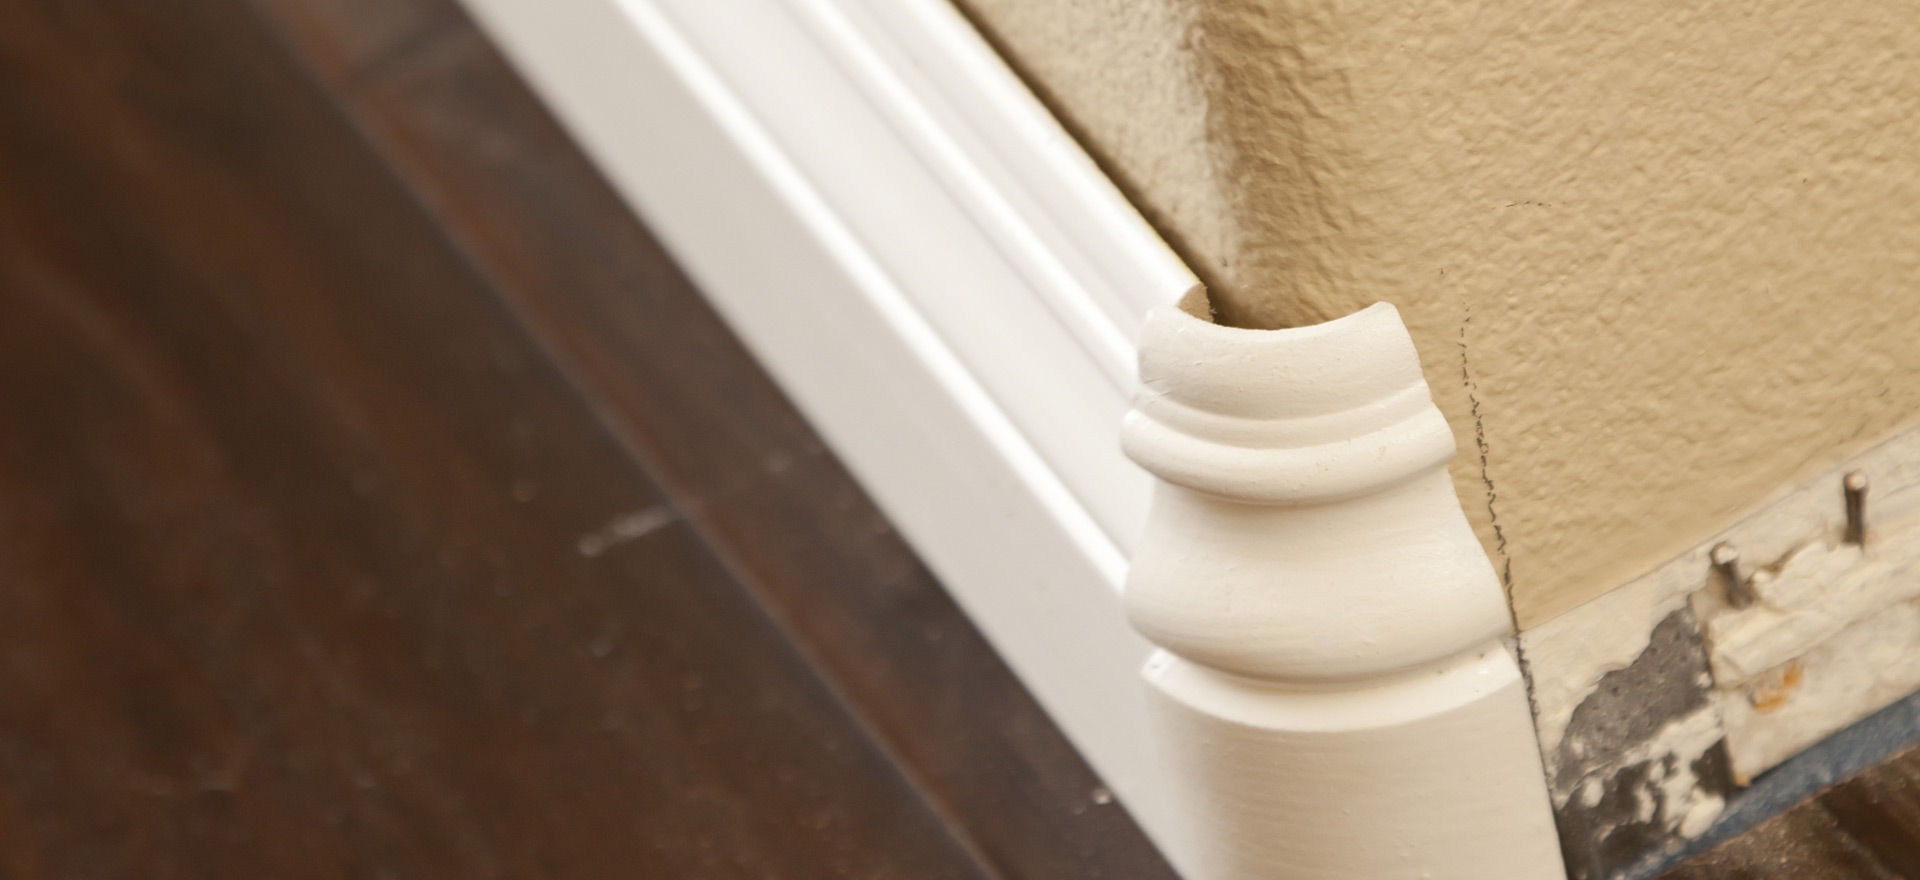 Selecting new moulding